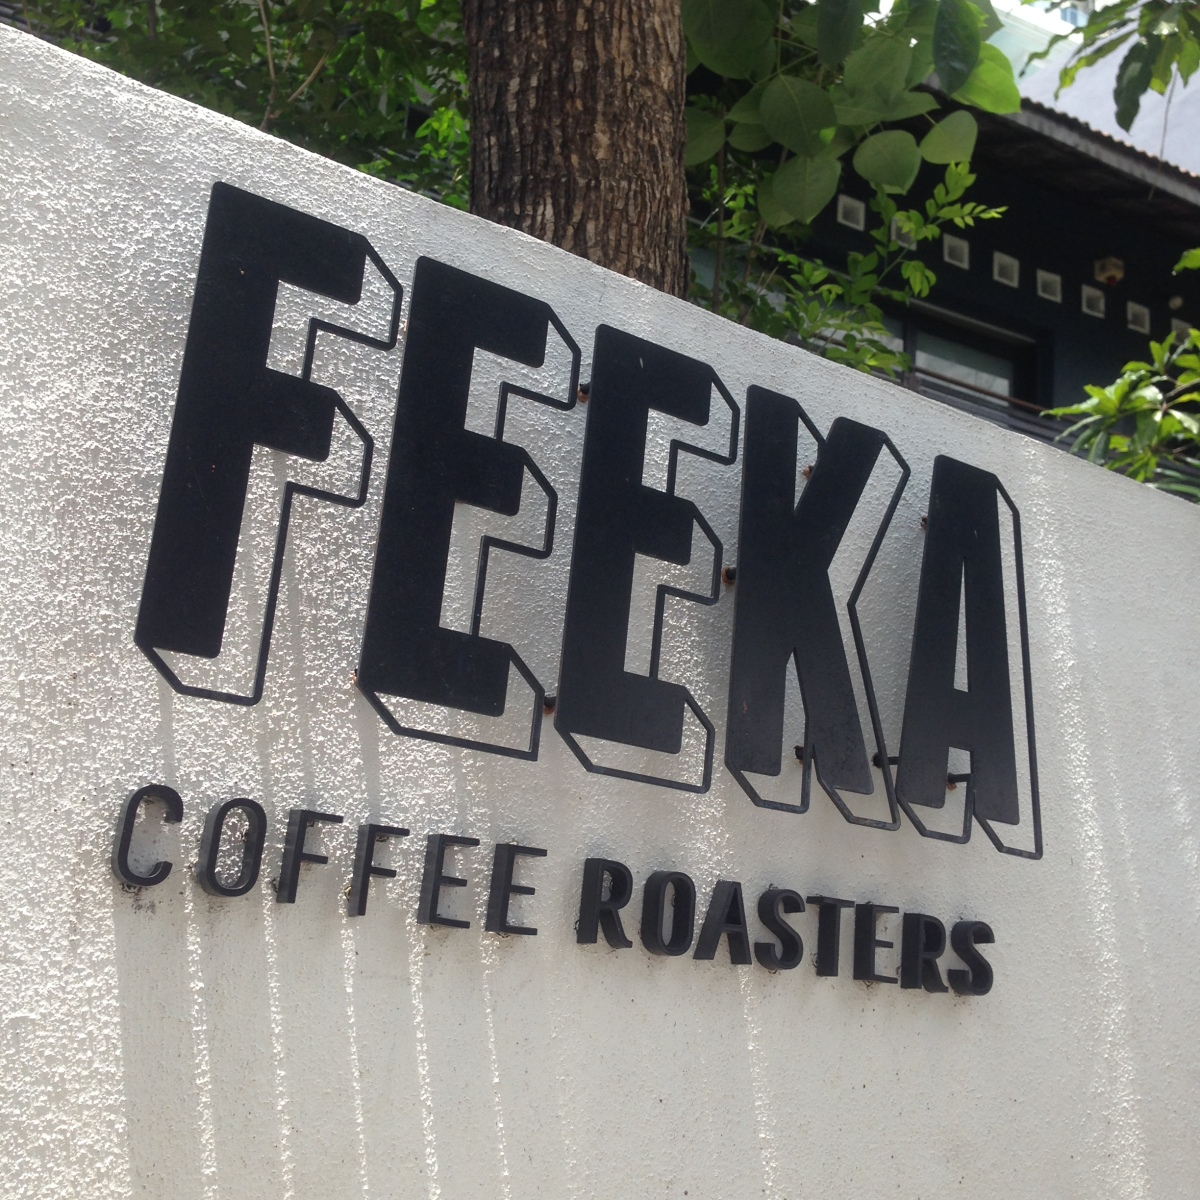 Feeka Coffee Roasters